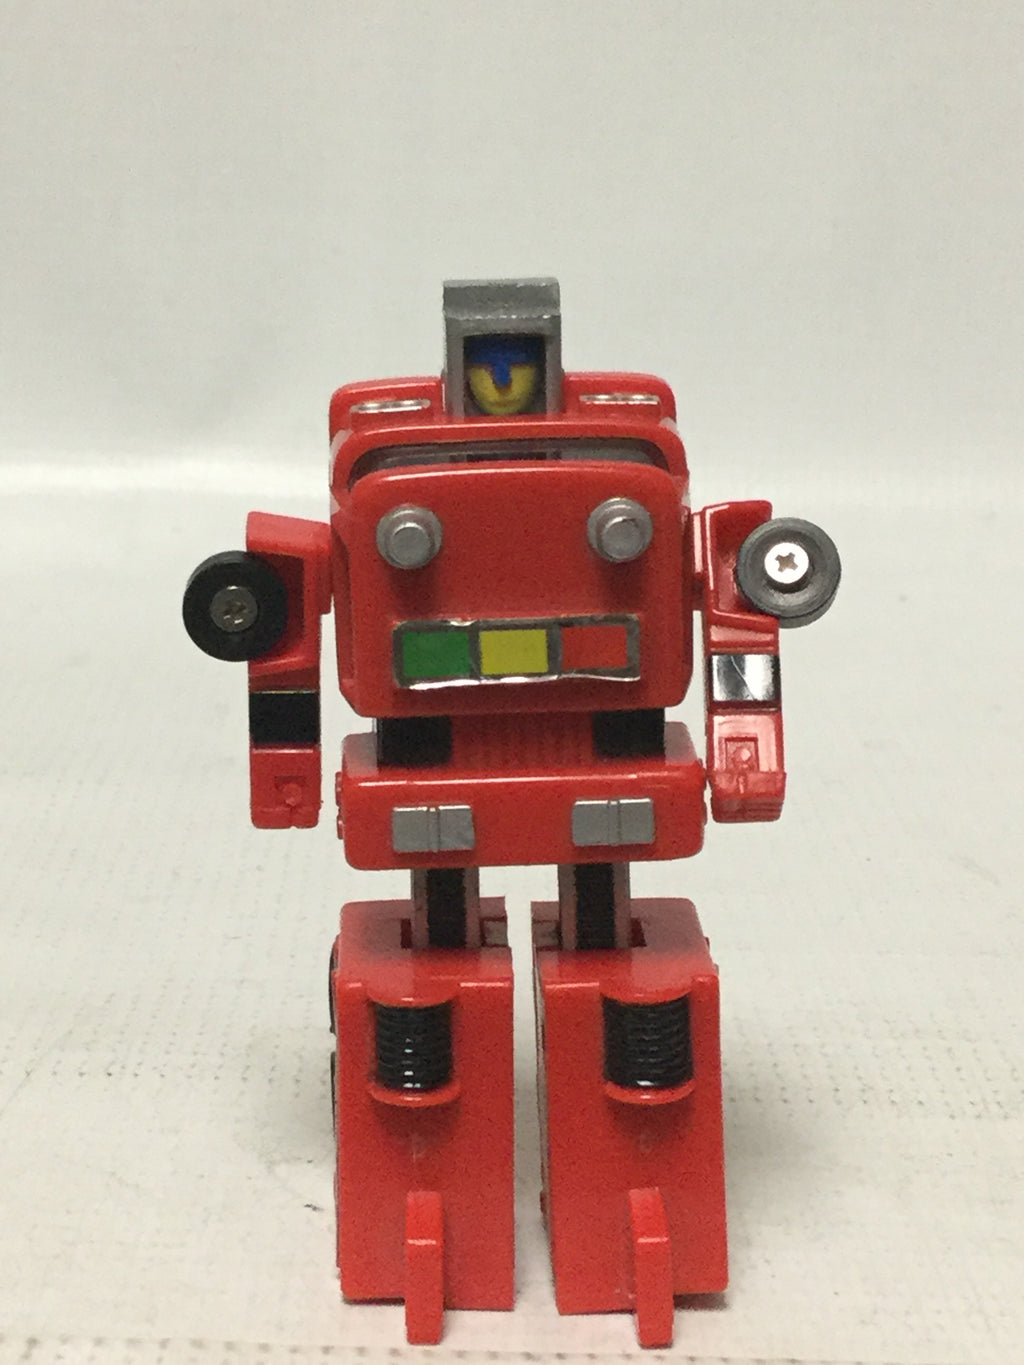 Remco Zybots 08 Hot Stuff Fire Engine